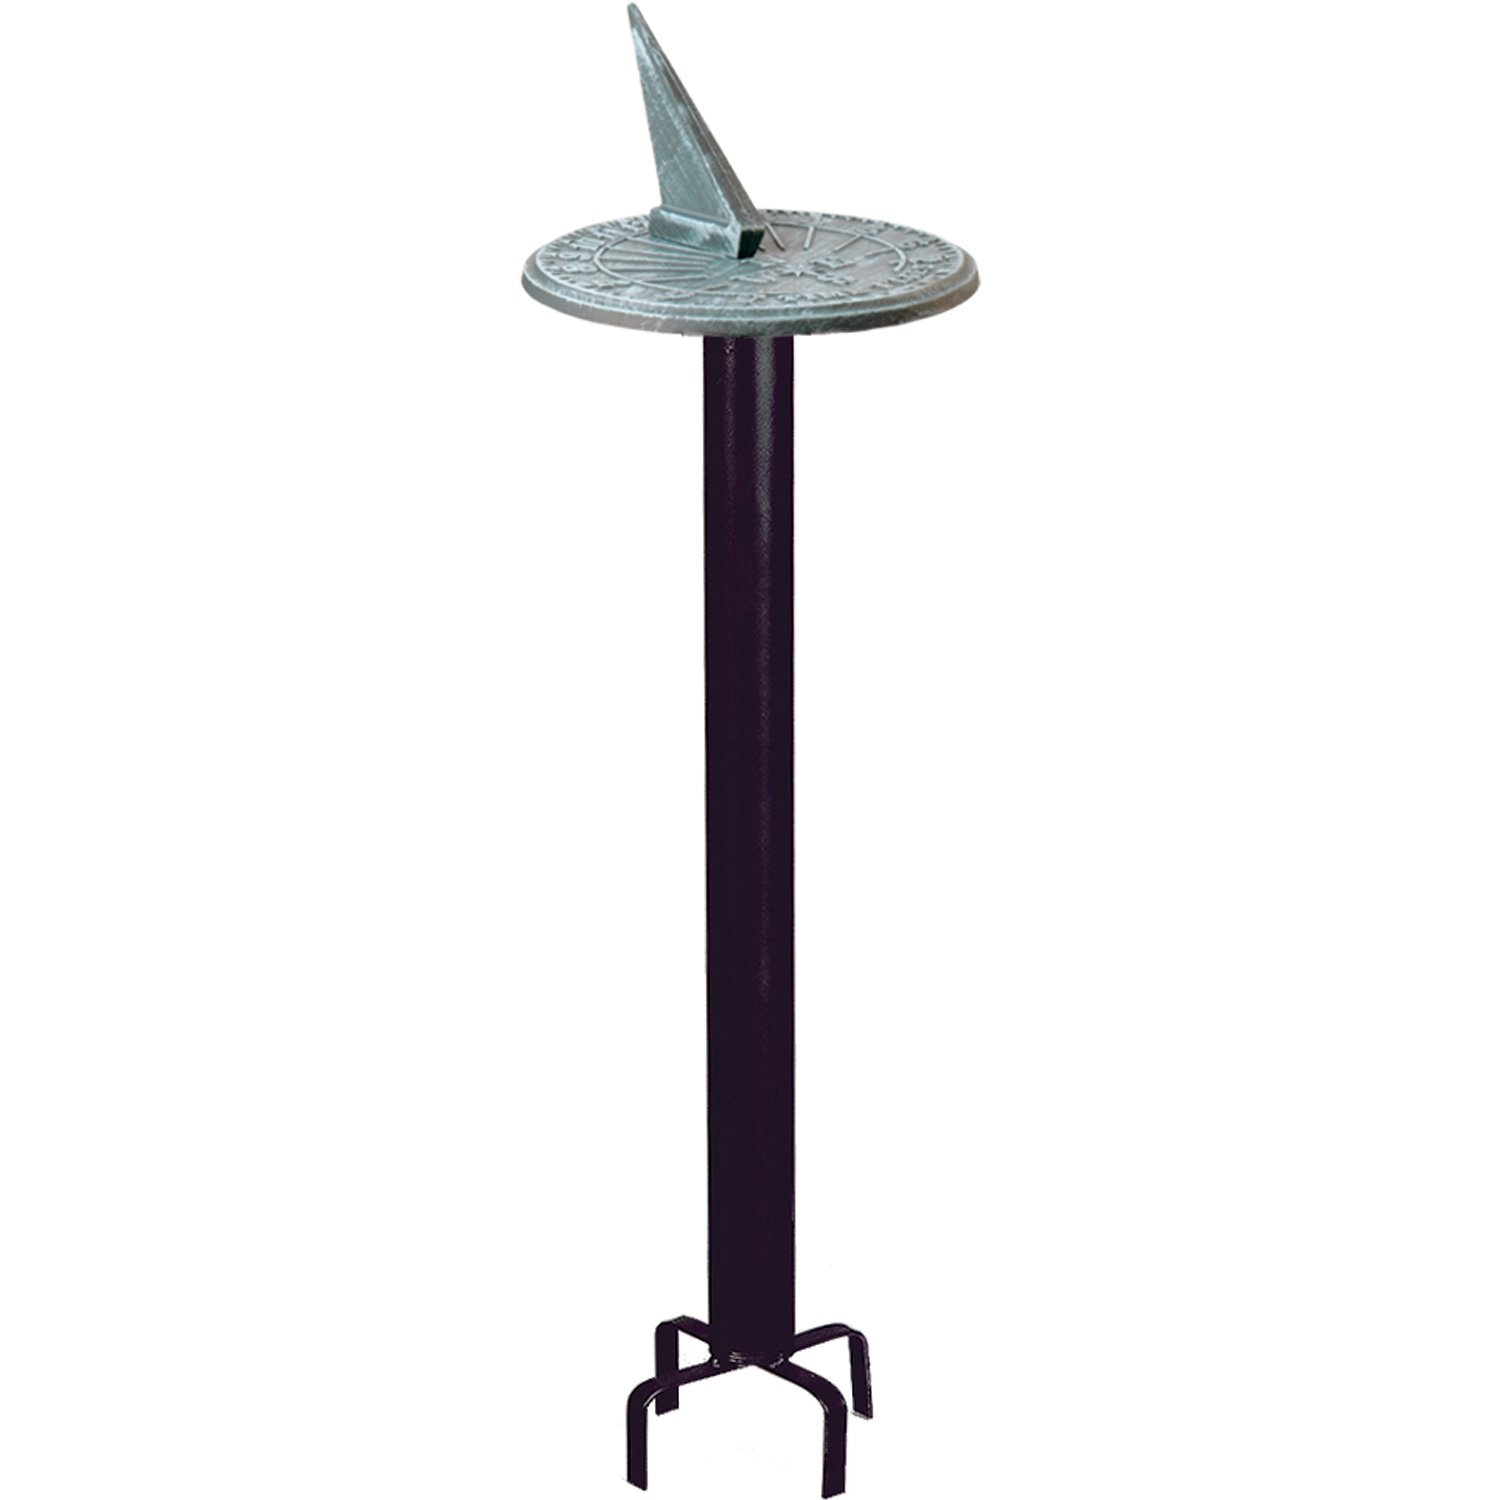 Rome B80 Black Classic Sundial Pedestal Base, Wrought Iron with Black Powder Coat, 24-Inch Height